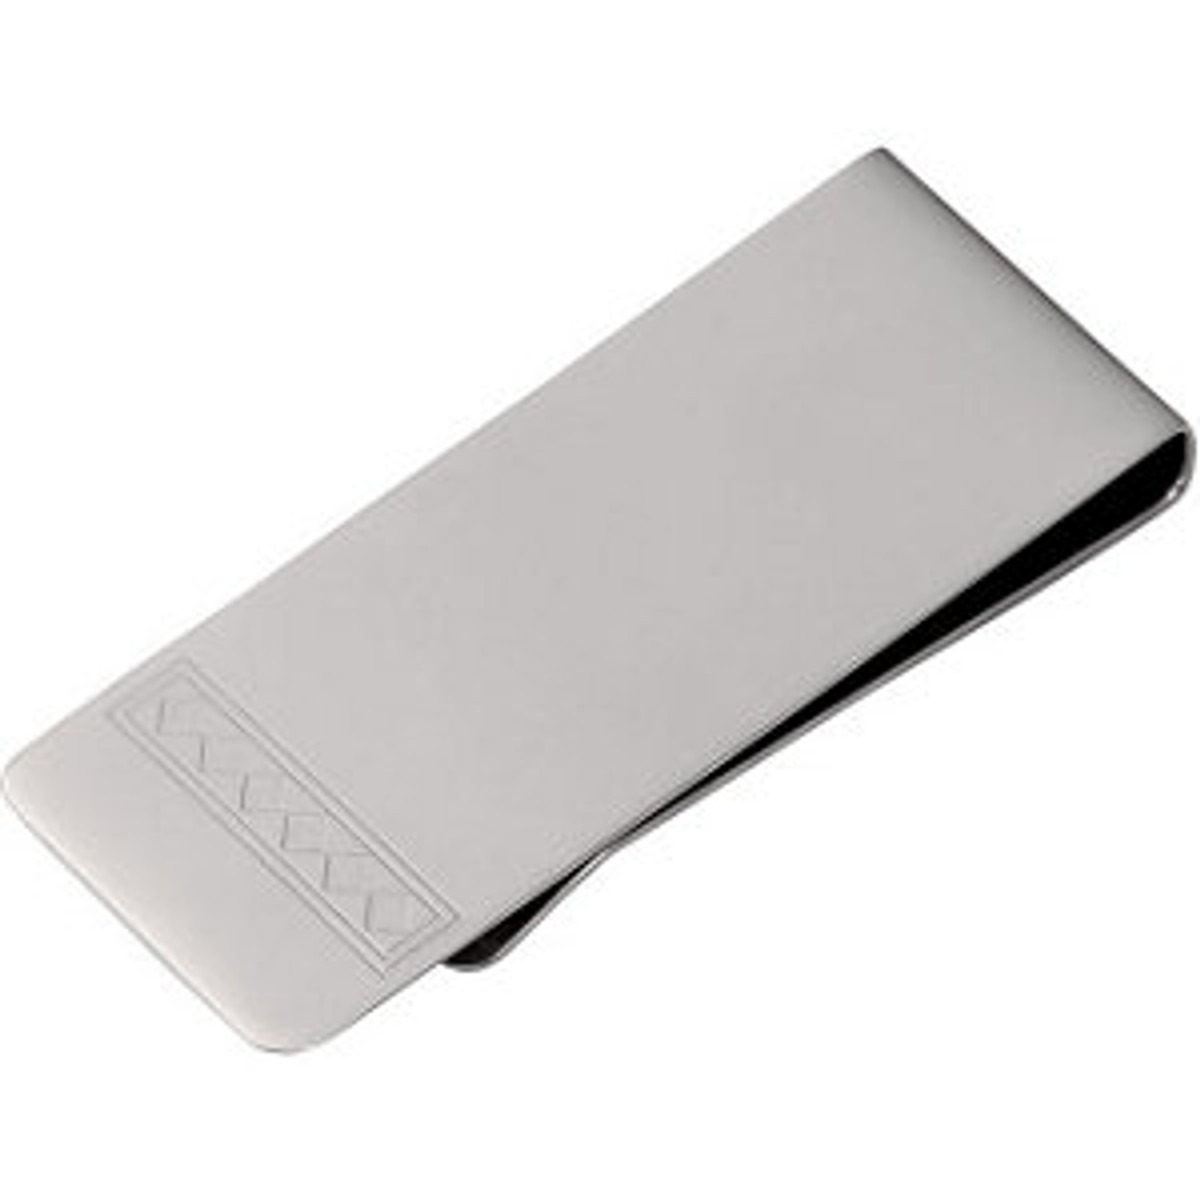 Stainless Steel Money Clip with Diamond Engraving